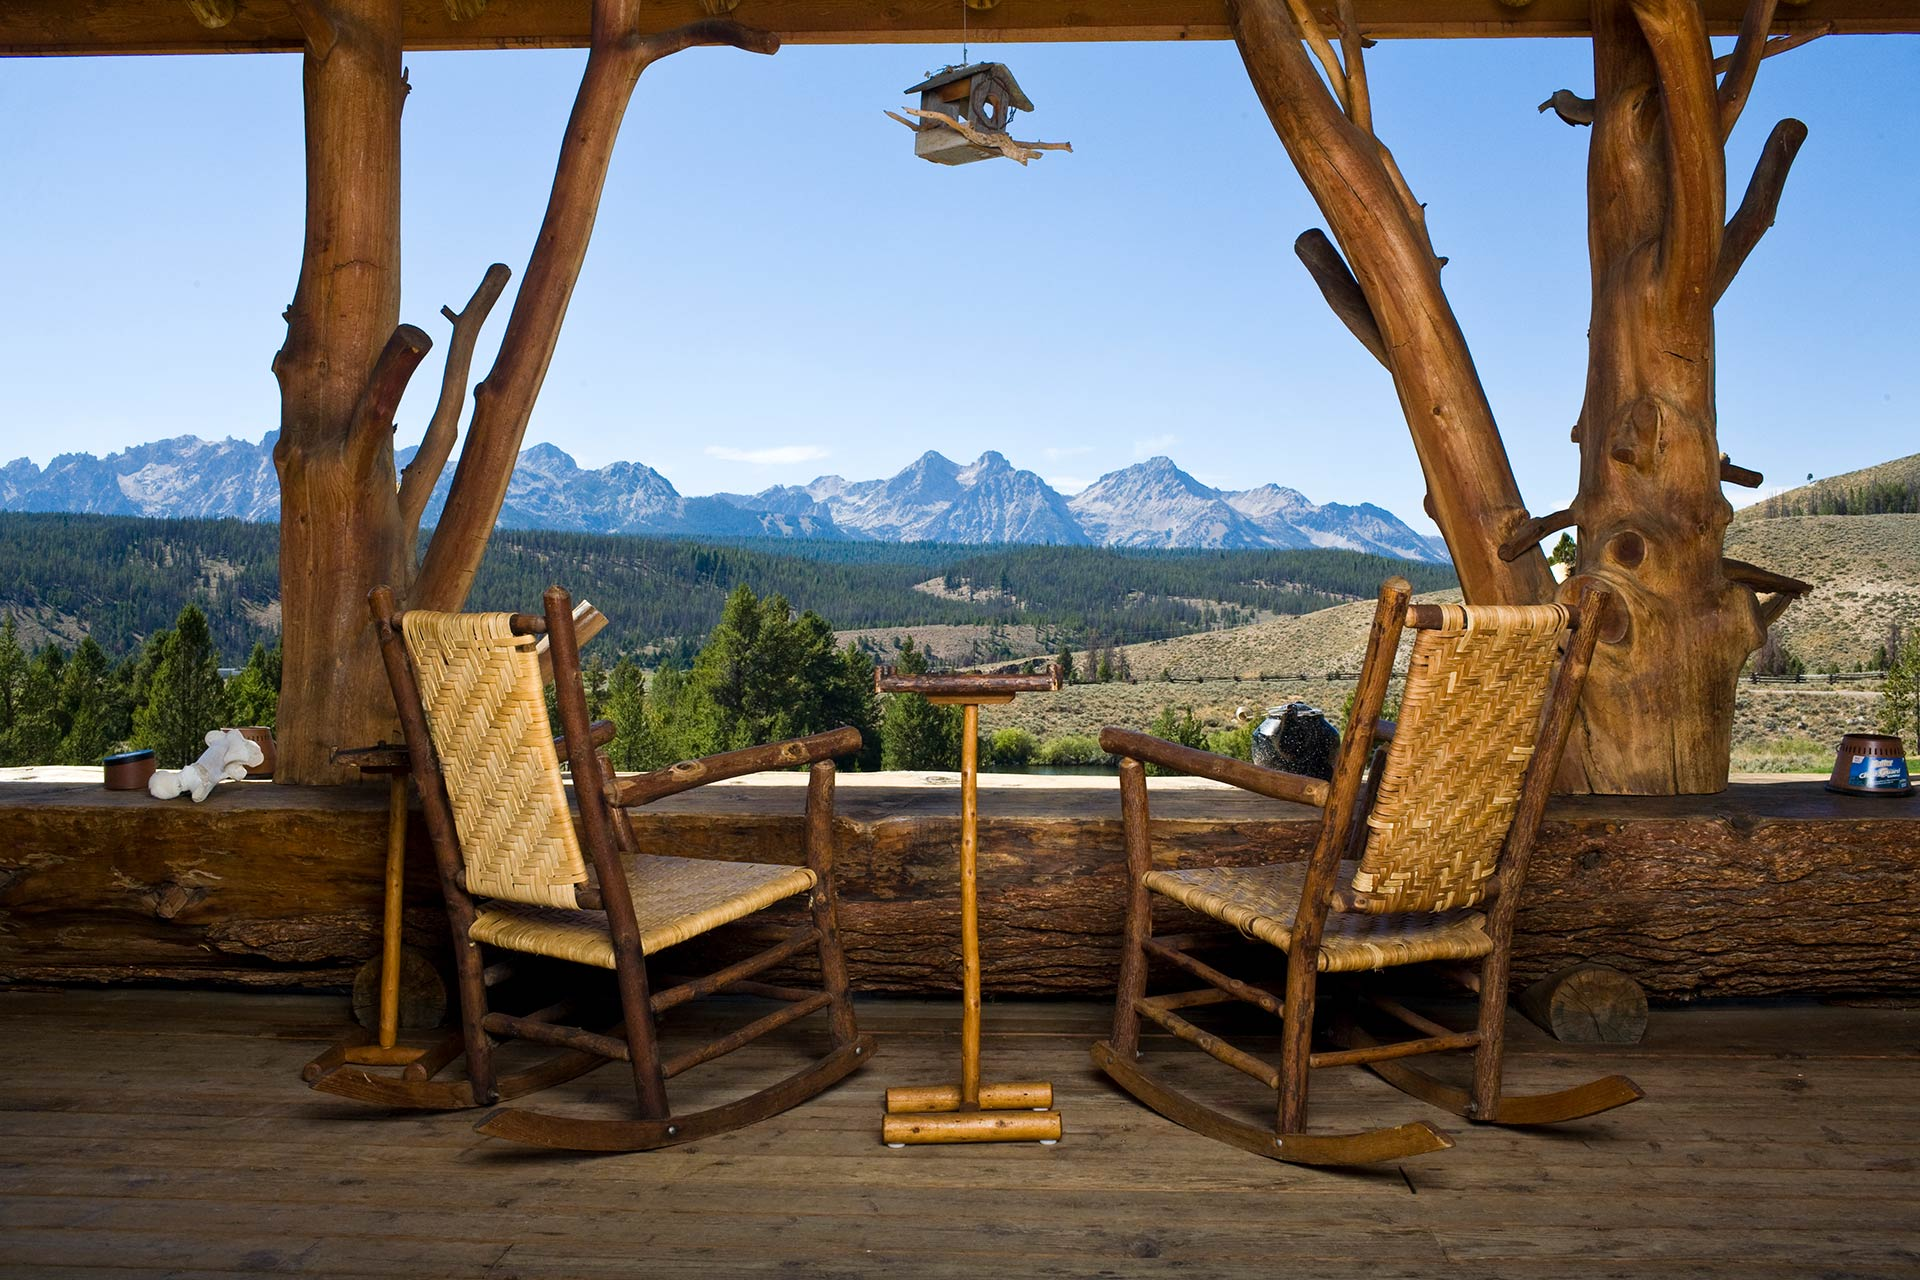 Relaxing on the porch overlooking a forest and the sawtooth mountains at a rocky mountain lodge and cabins